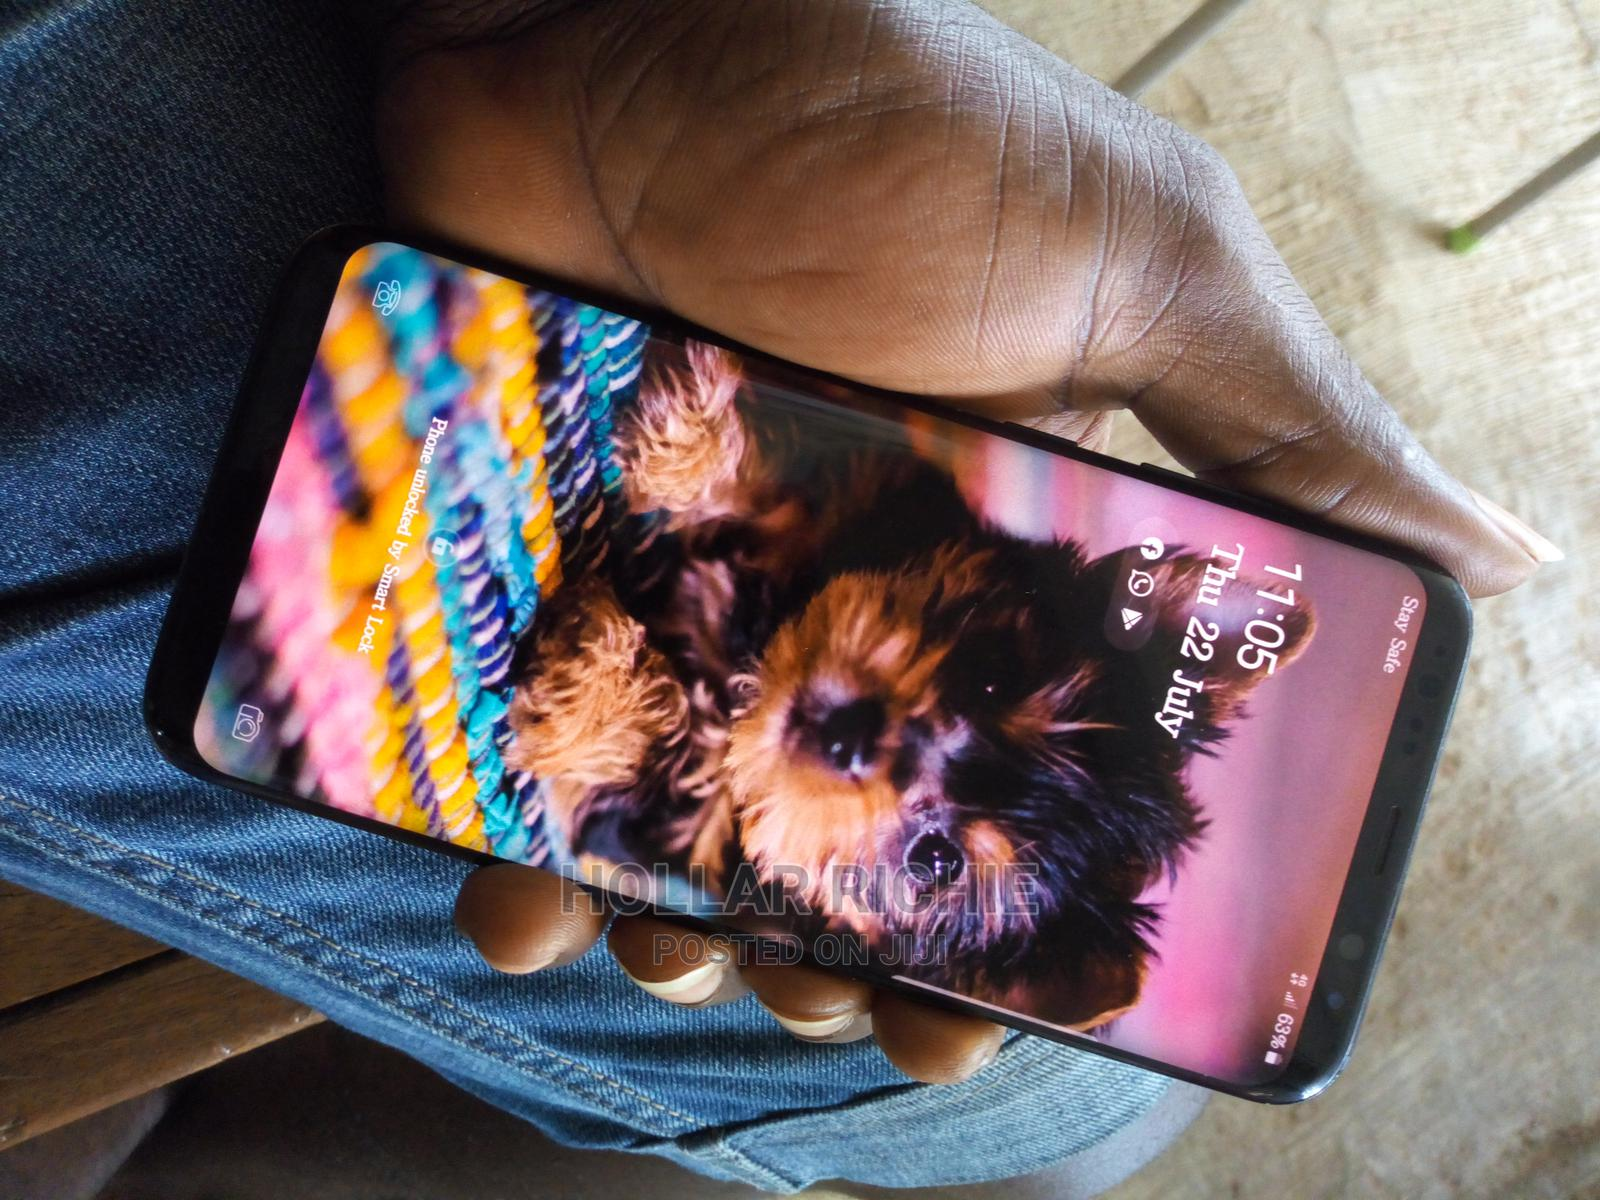 Samsung Galaxy S8 Plus 64 GB Black   Mobile Phones for sale in Akungba, Ondo State, Nigeria